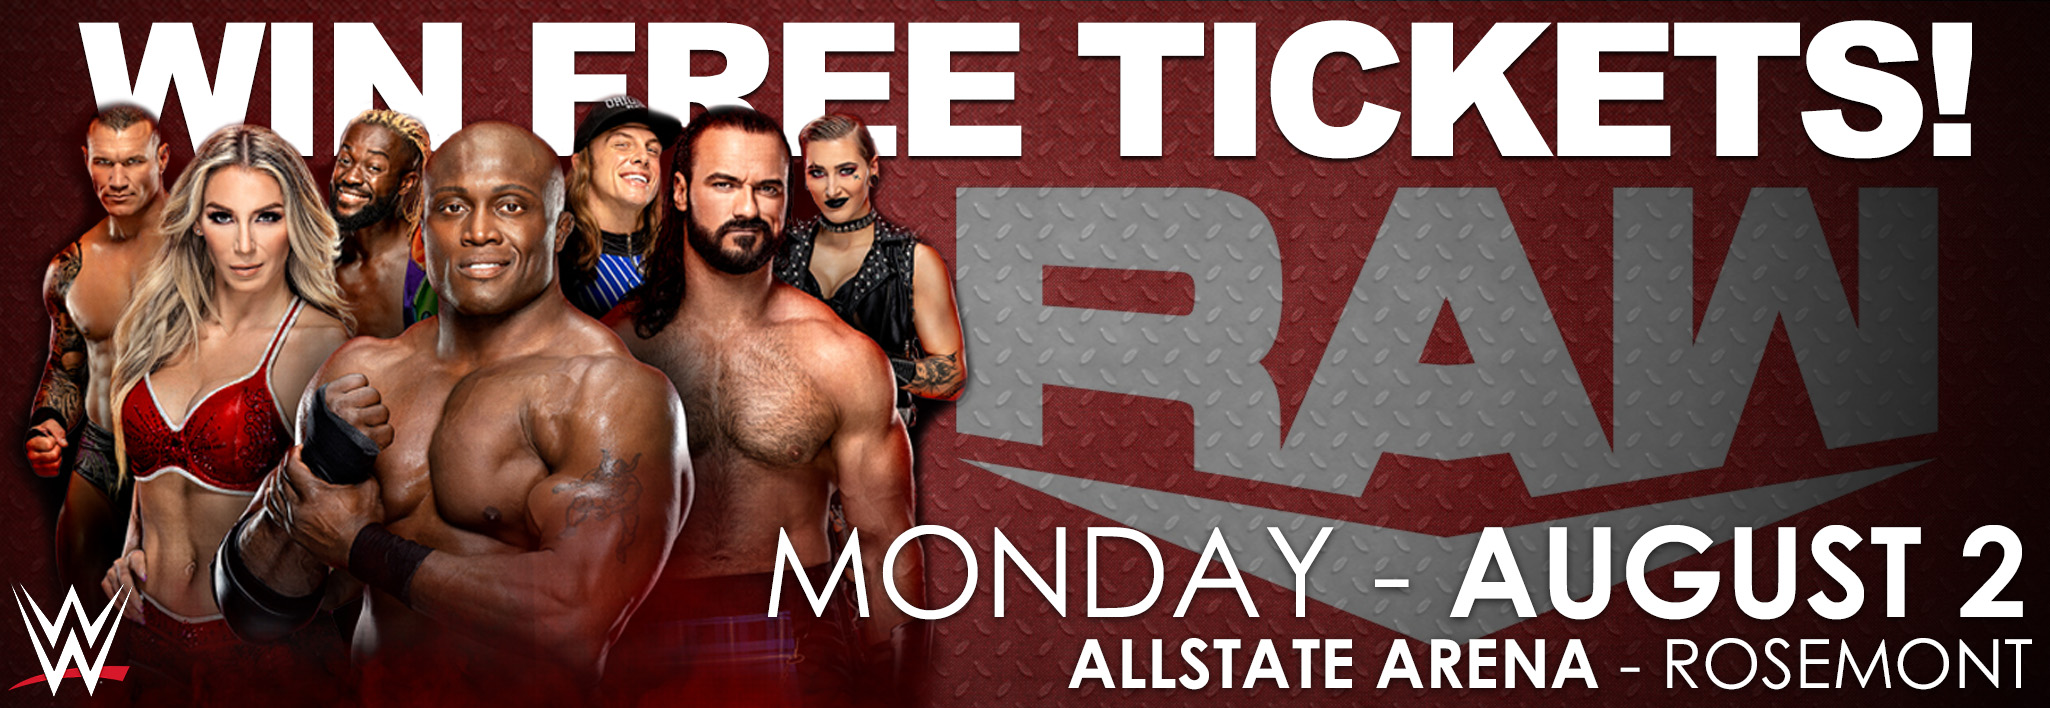 GDS WWE Ticket Giveaway